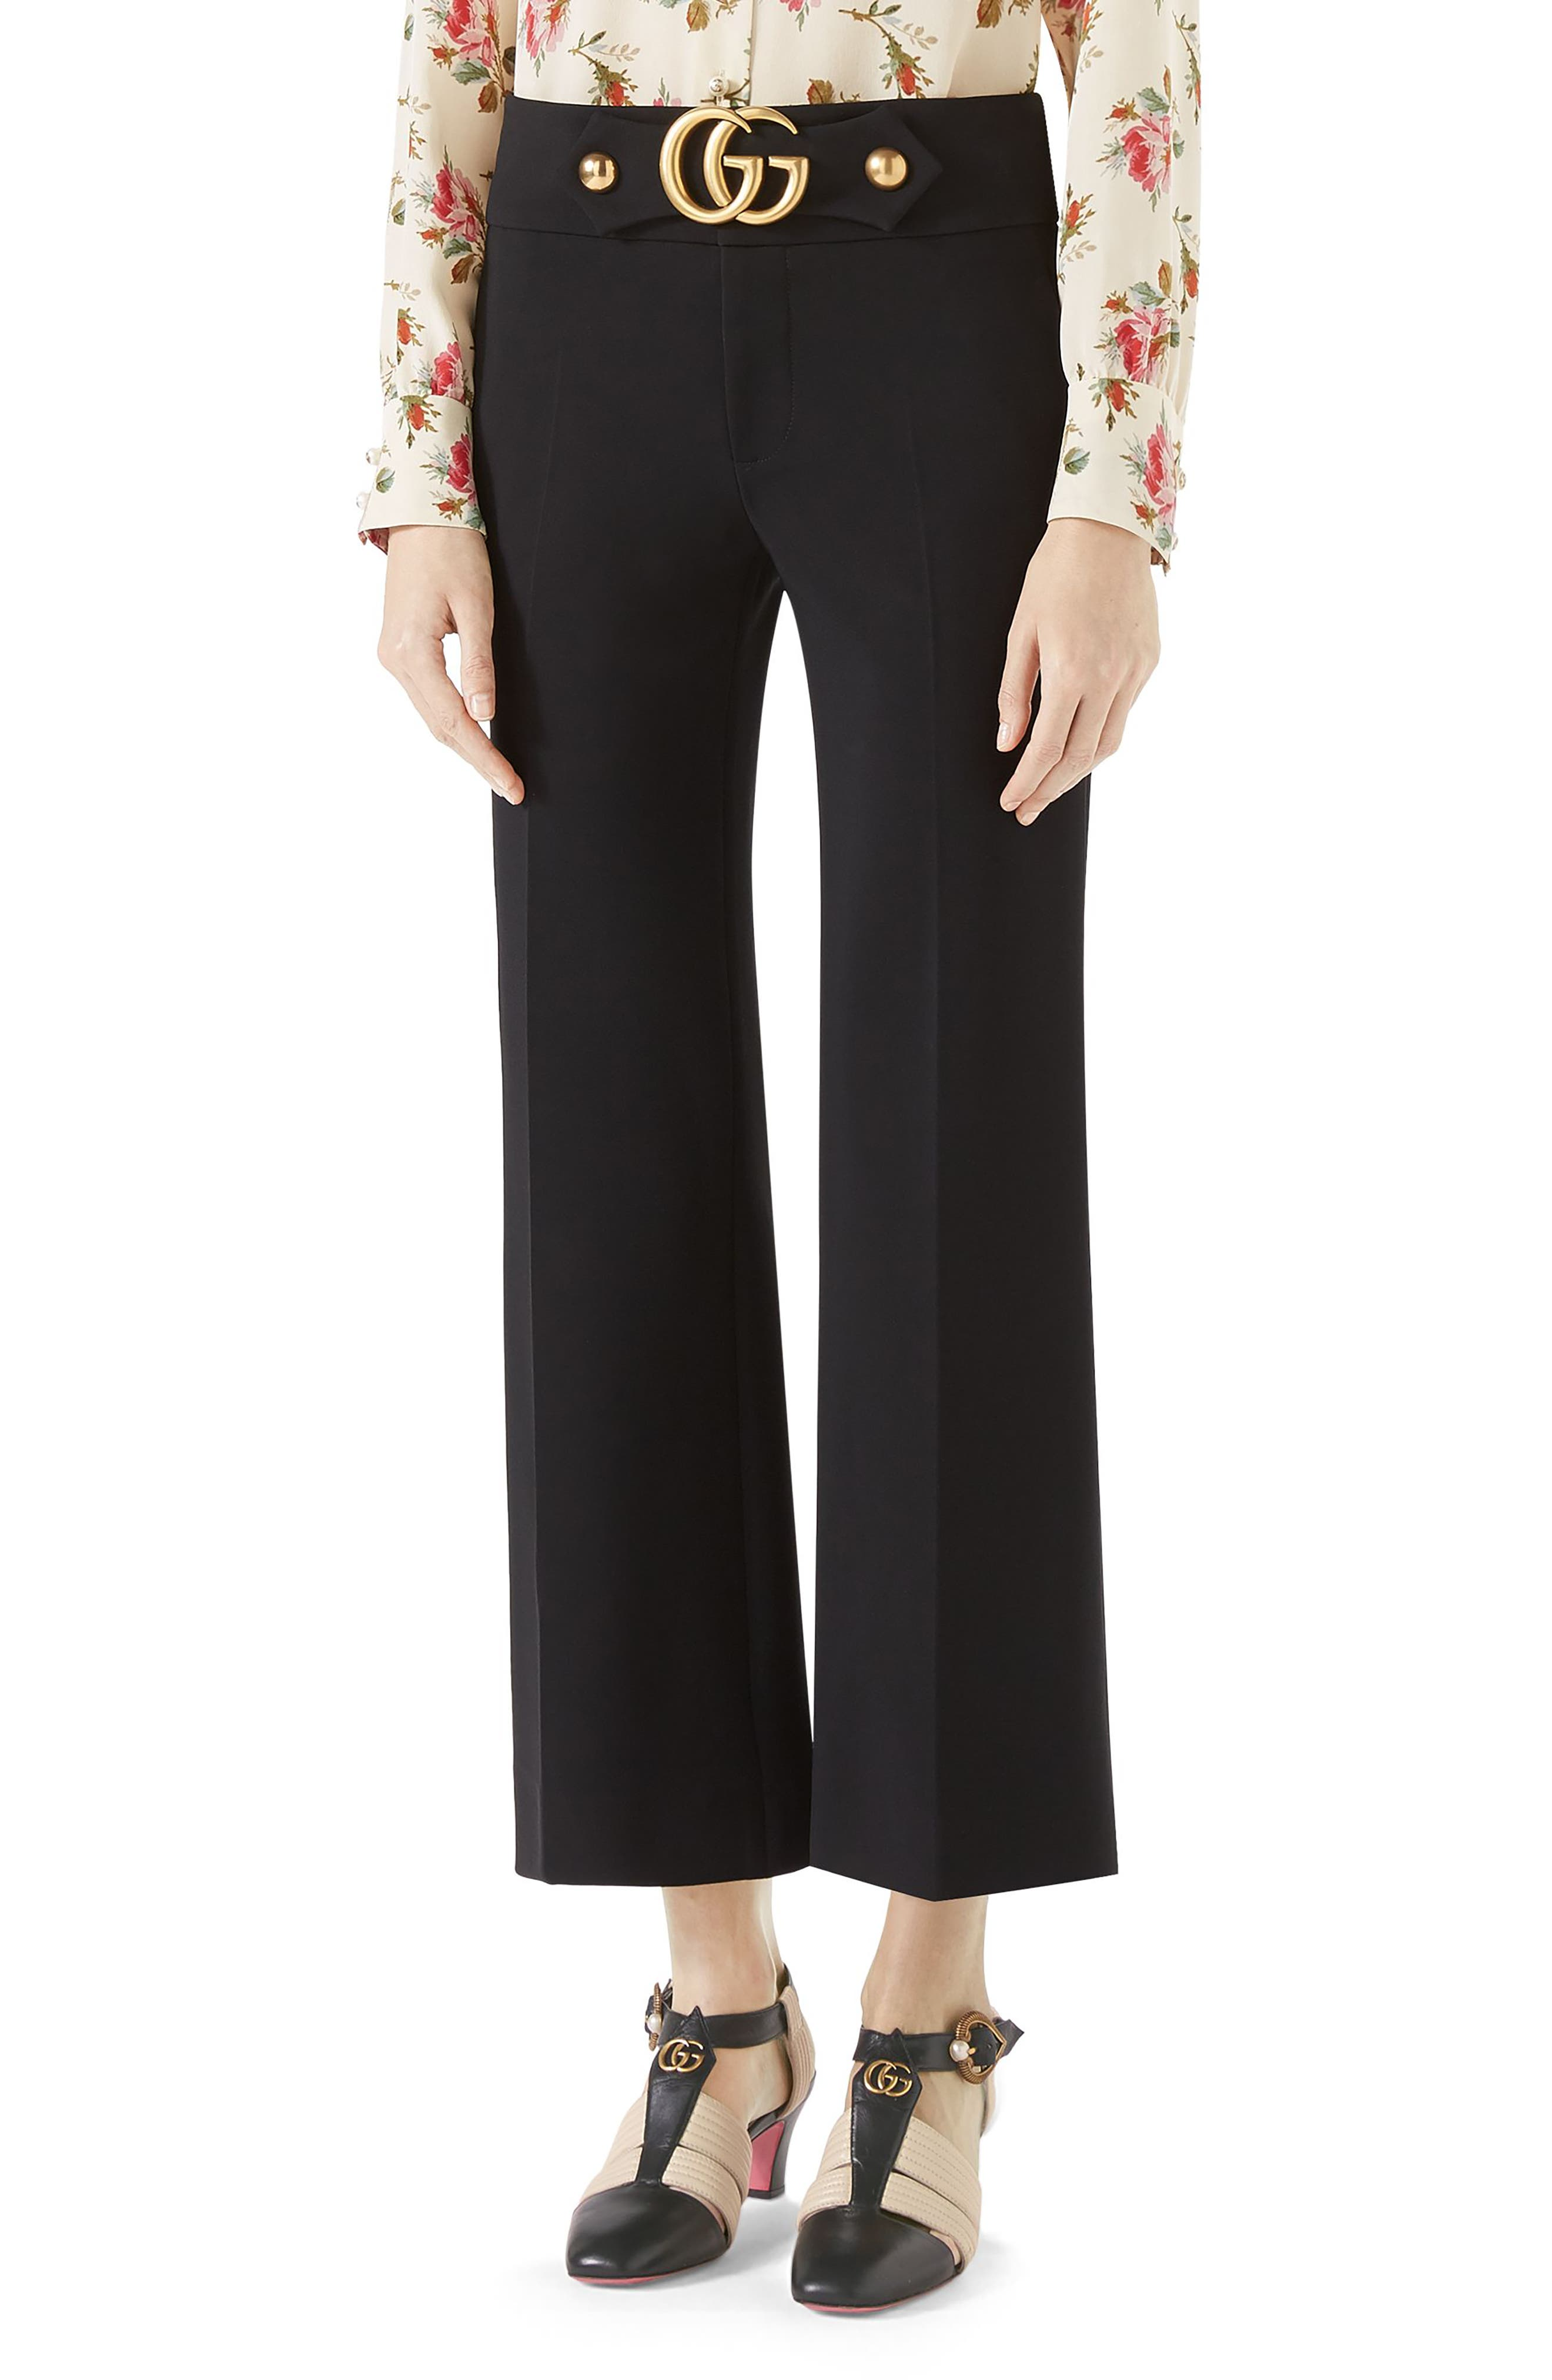 Gucci Marmont Stretch Jersey Crop Pants